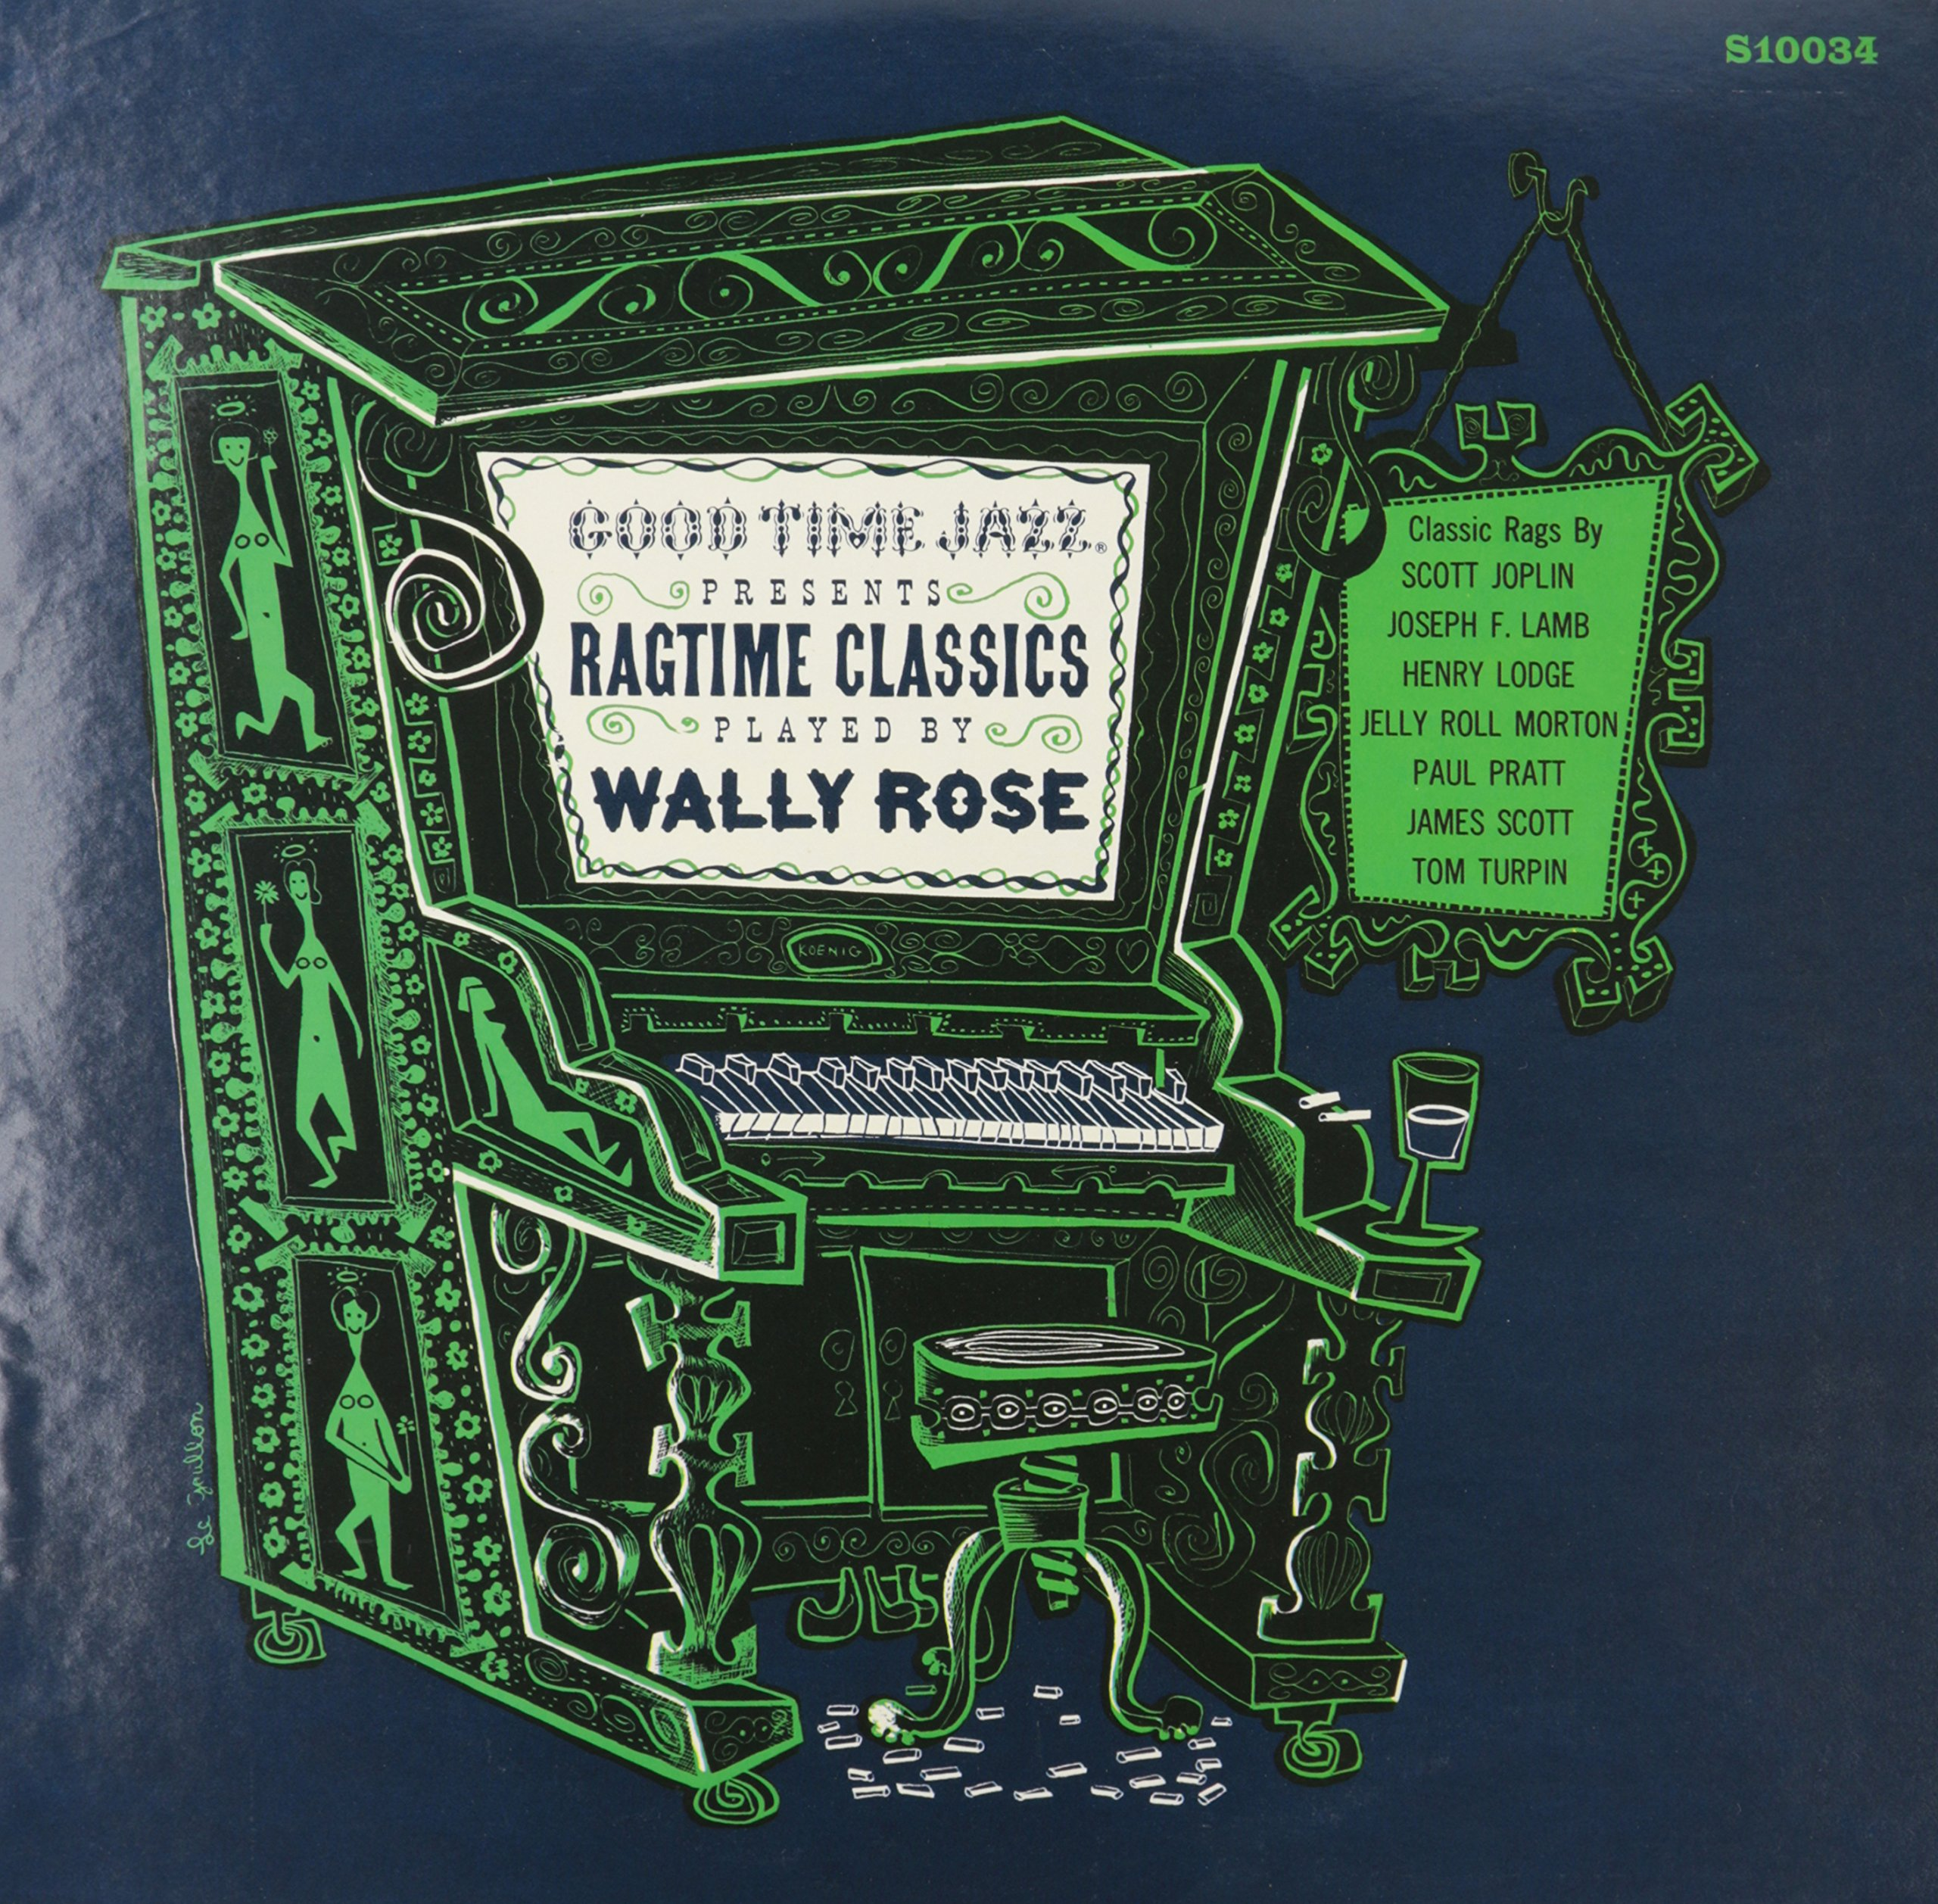 Vinilo : Wally Rose - Ragtime Classics Played By Wally Rose (LP Vinyl)